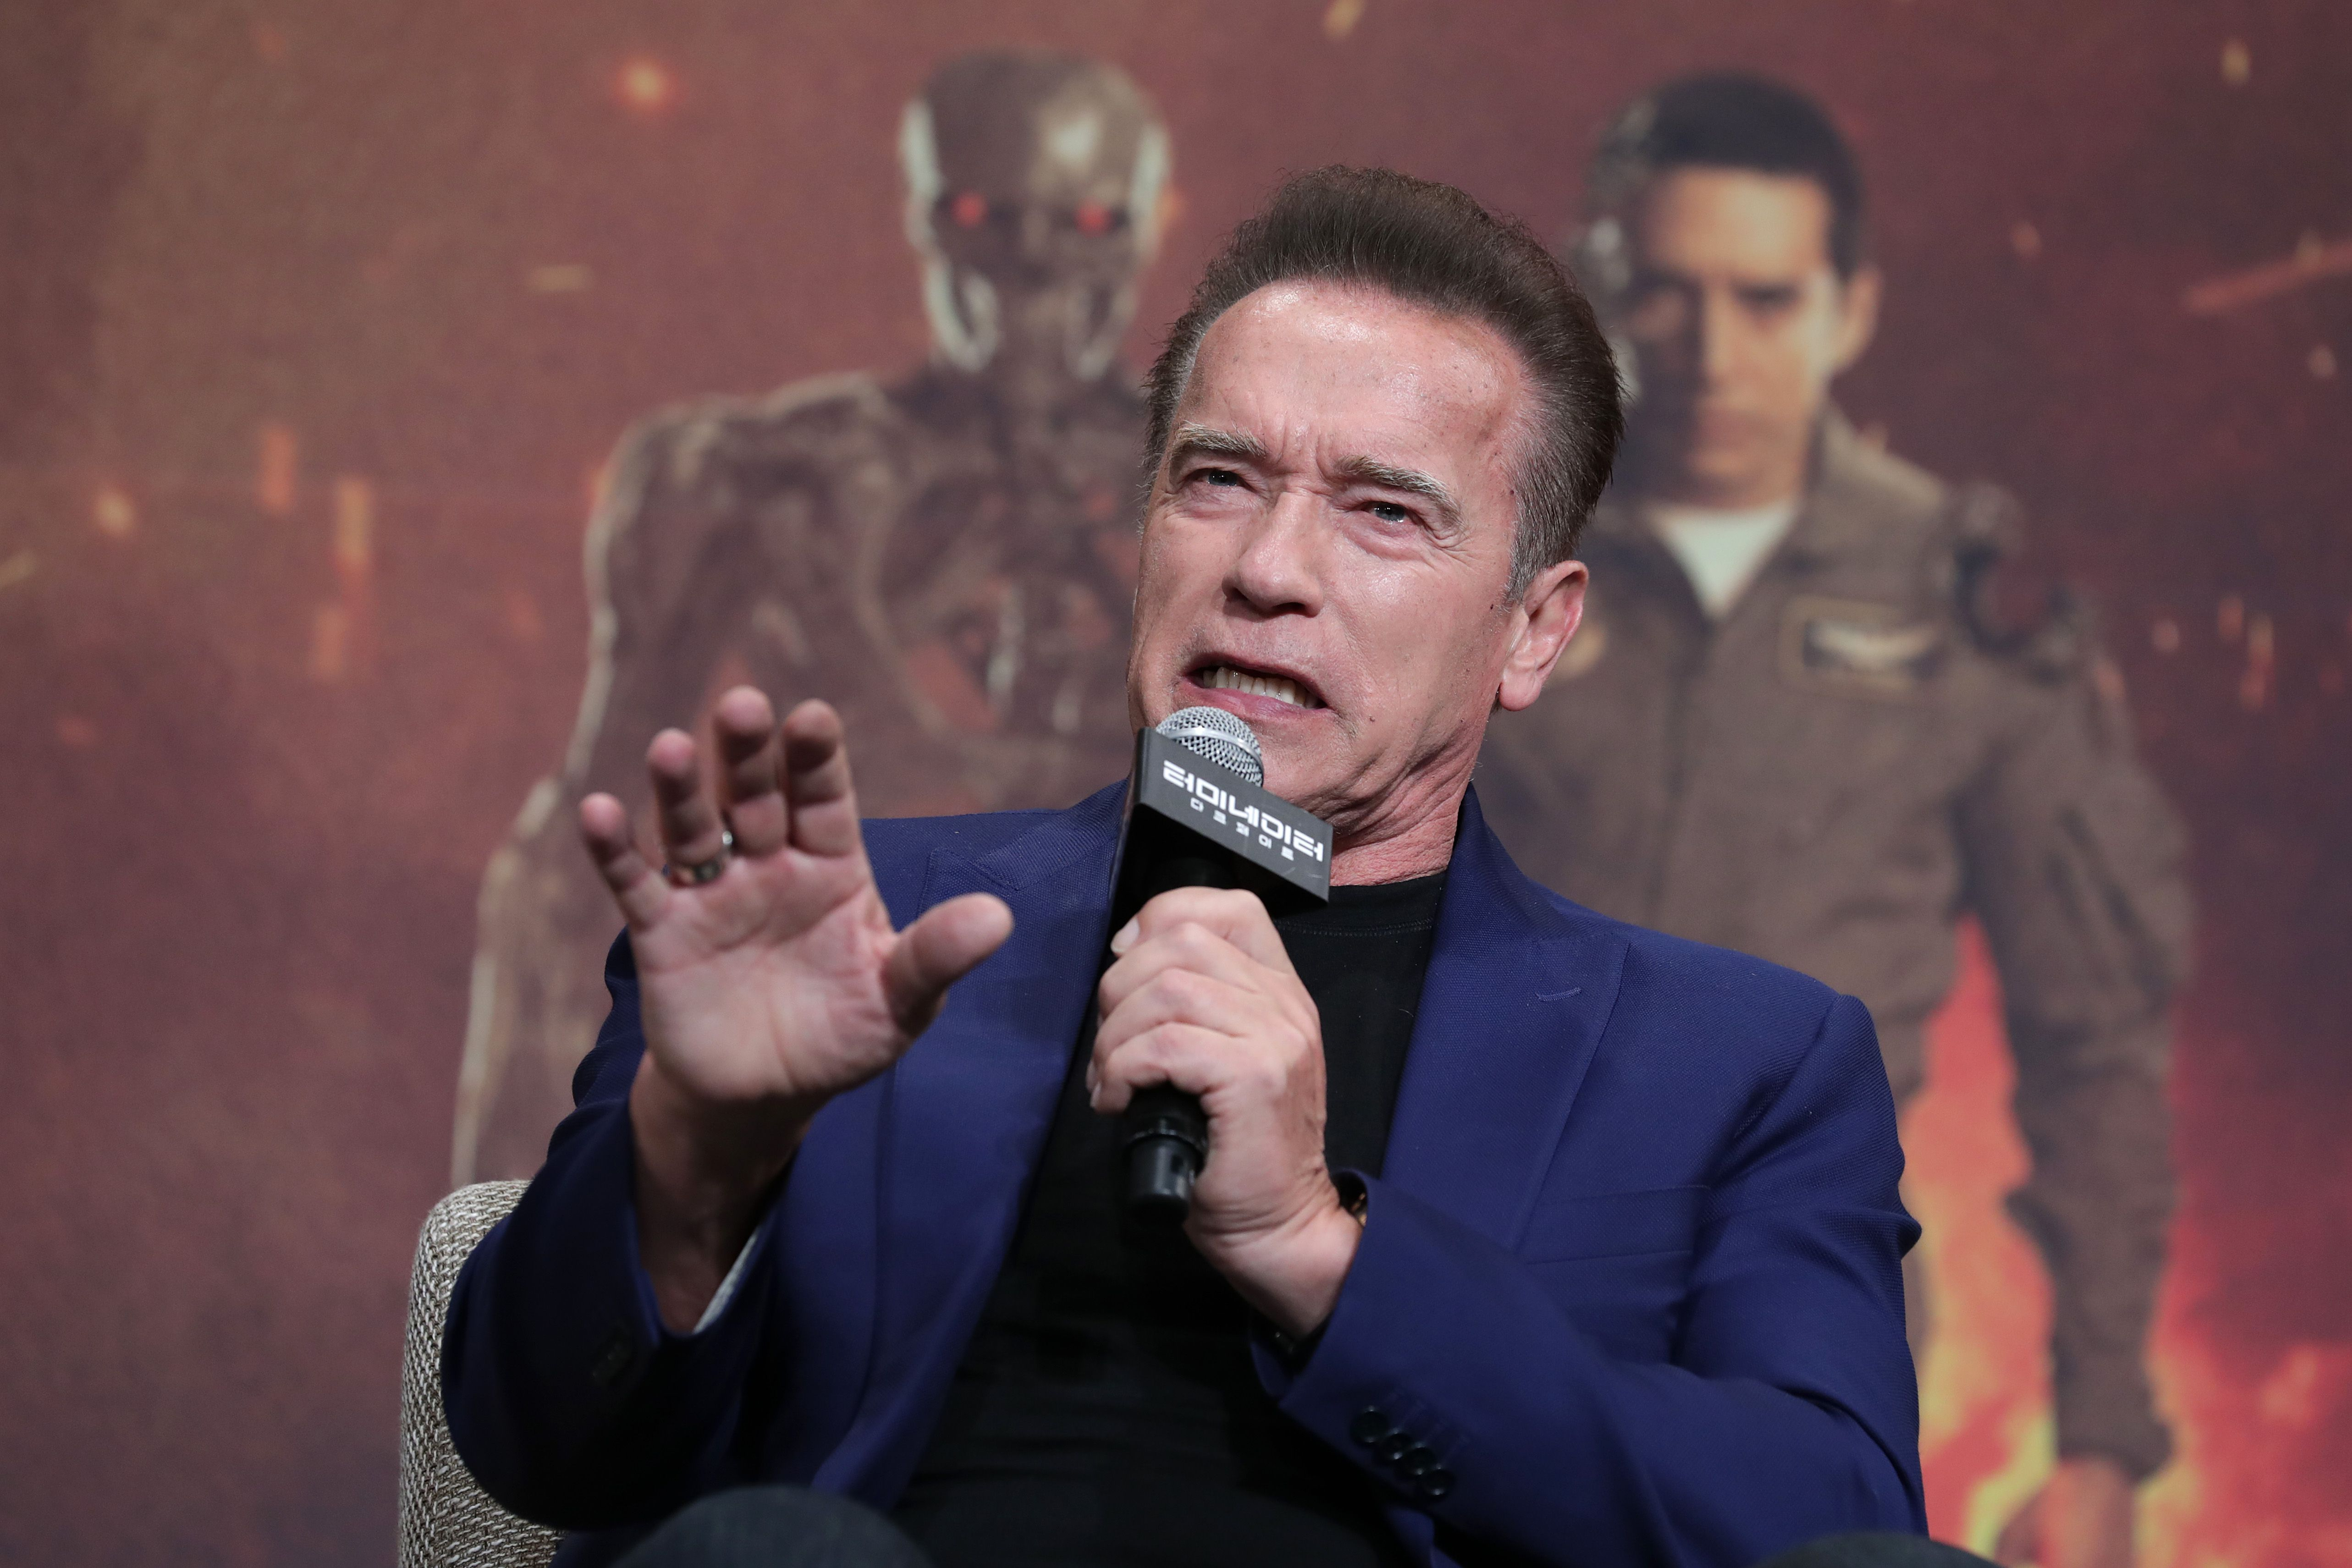 Arnold Schwarzenegger Reveals the Common Gym Mistakes That Seriously Annoy Him